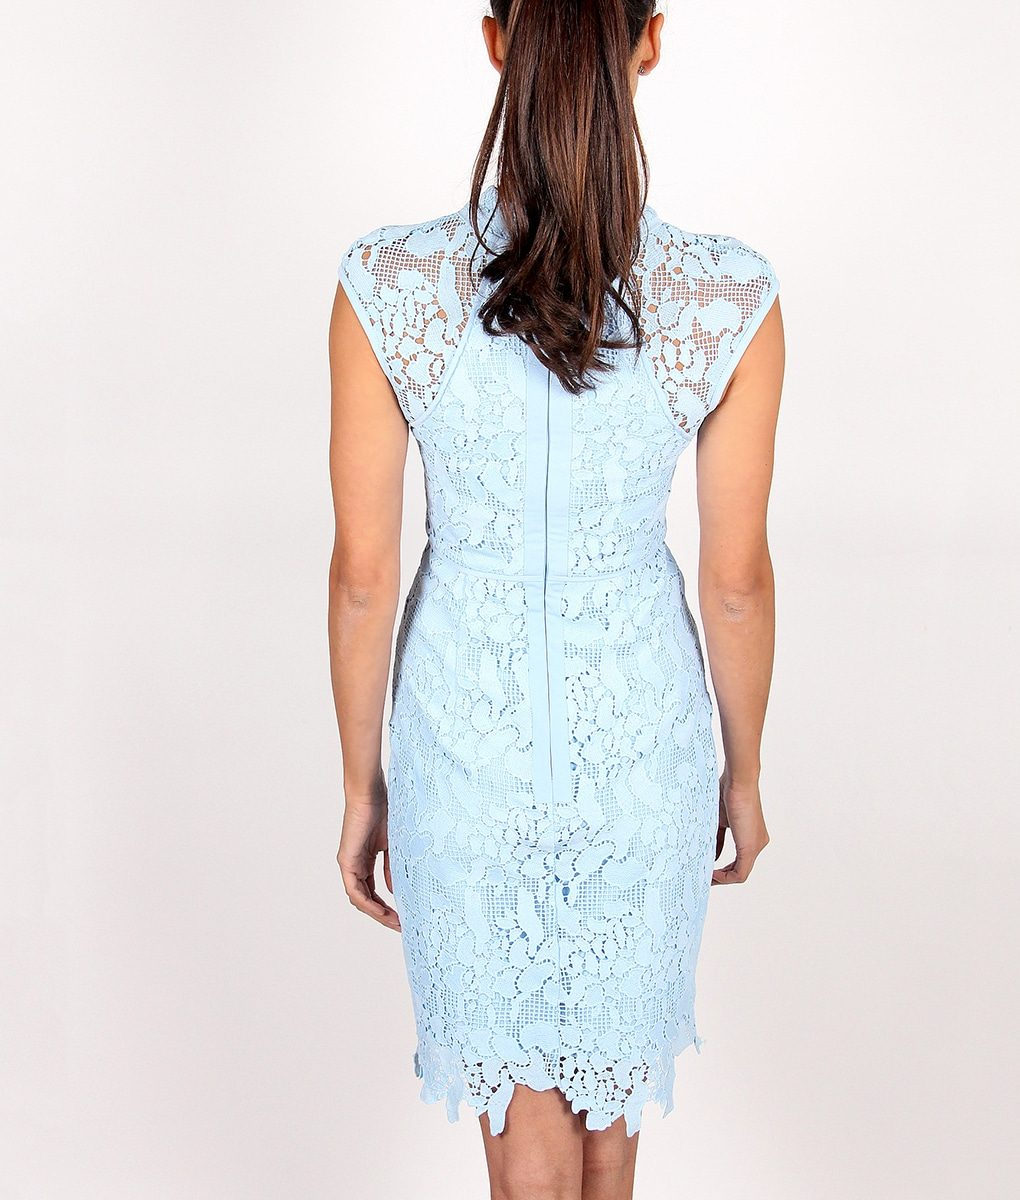 Alila-Sky-Blue-Fitted-Lace-Dress-for-wedding-by-Lumier-by-Bariano